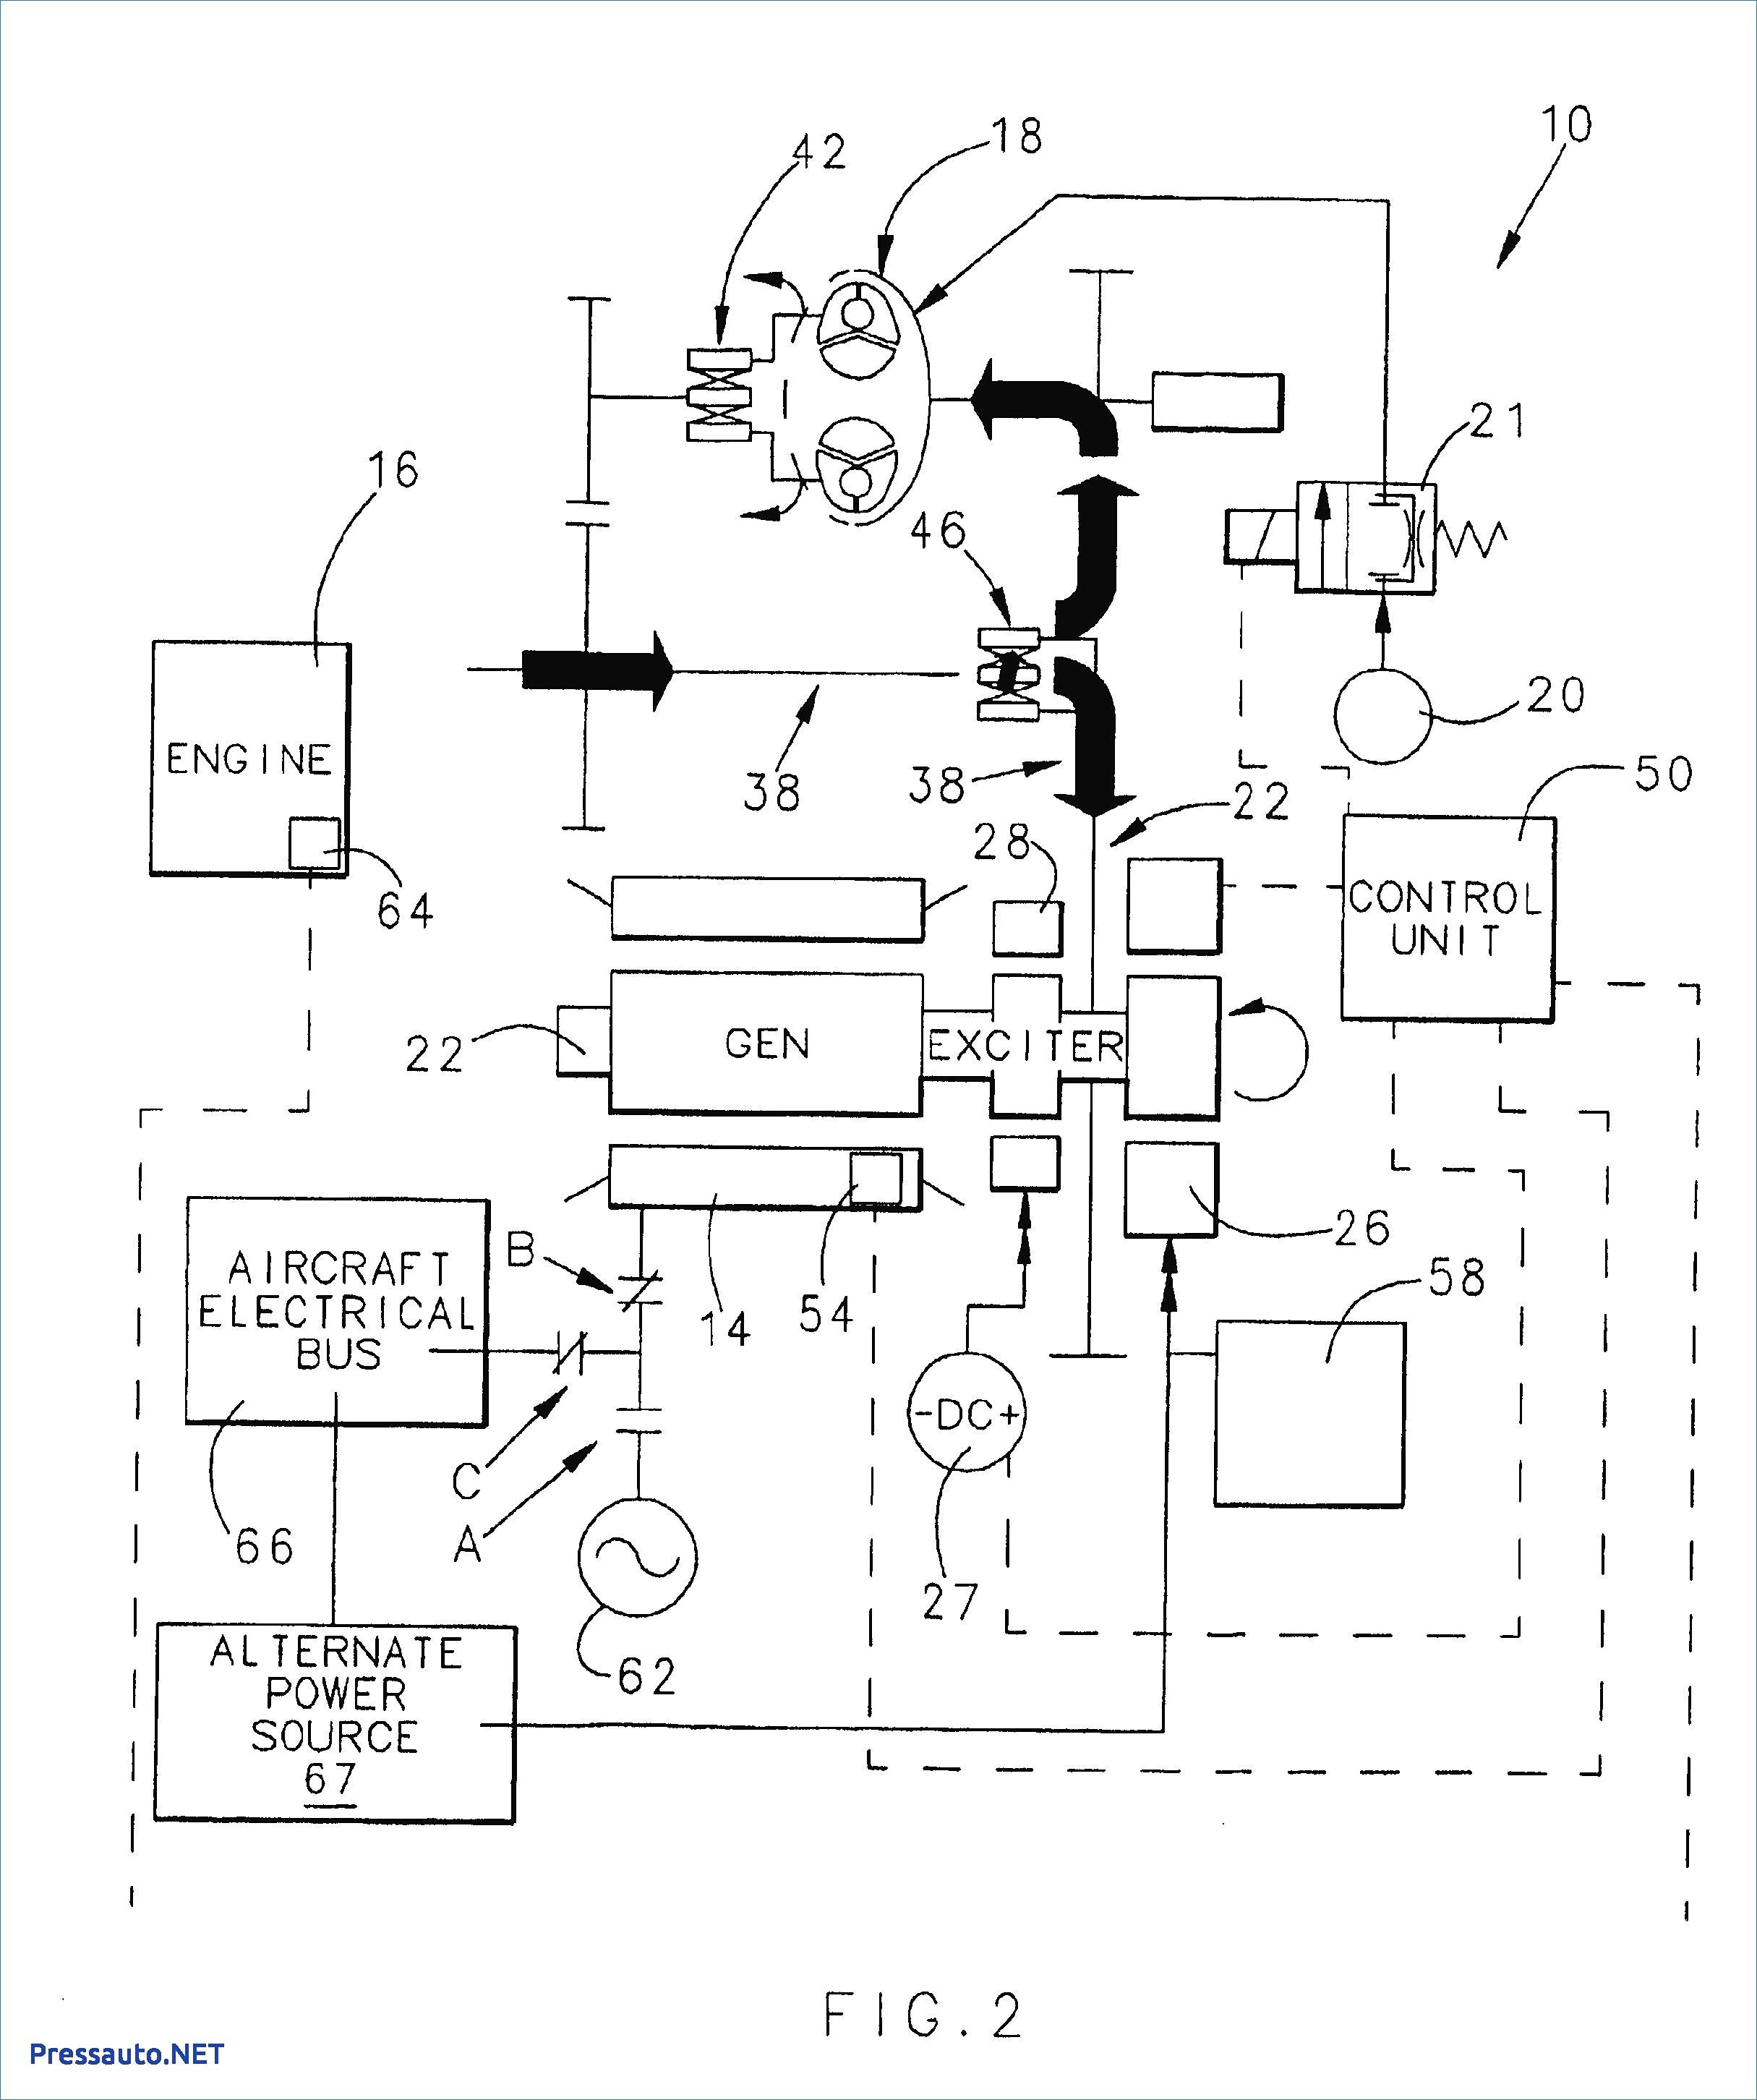 50dn alternator diagram wiring diagram forwardmtd 952z170 au engine diagram  #9